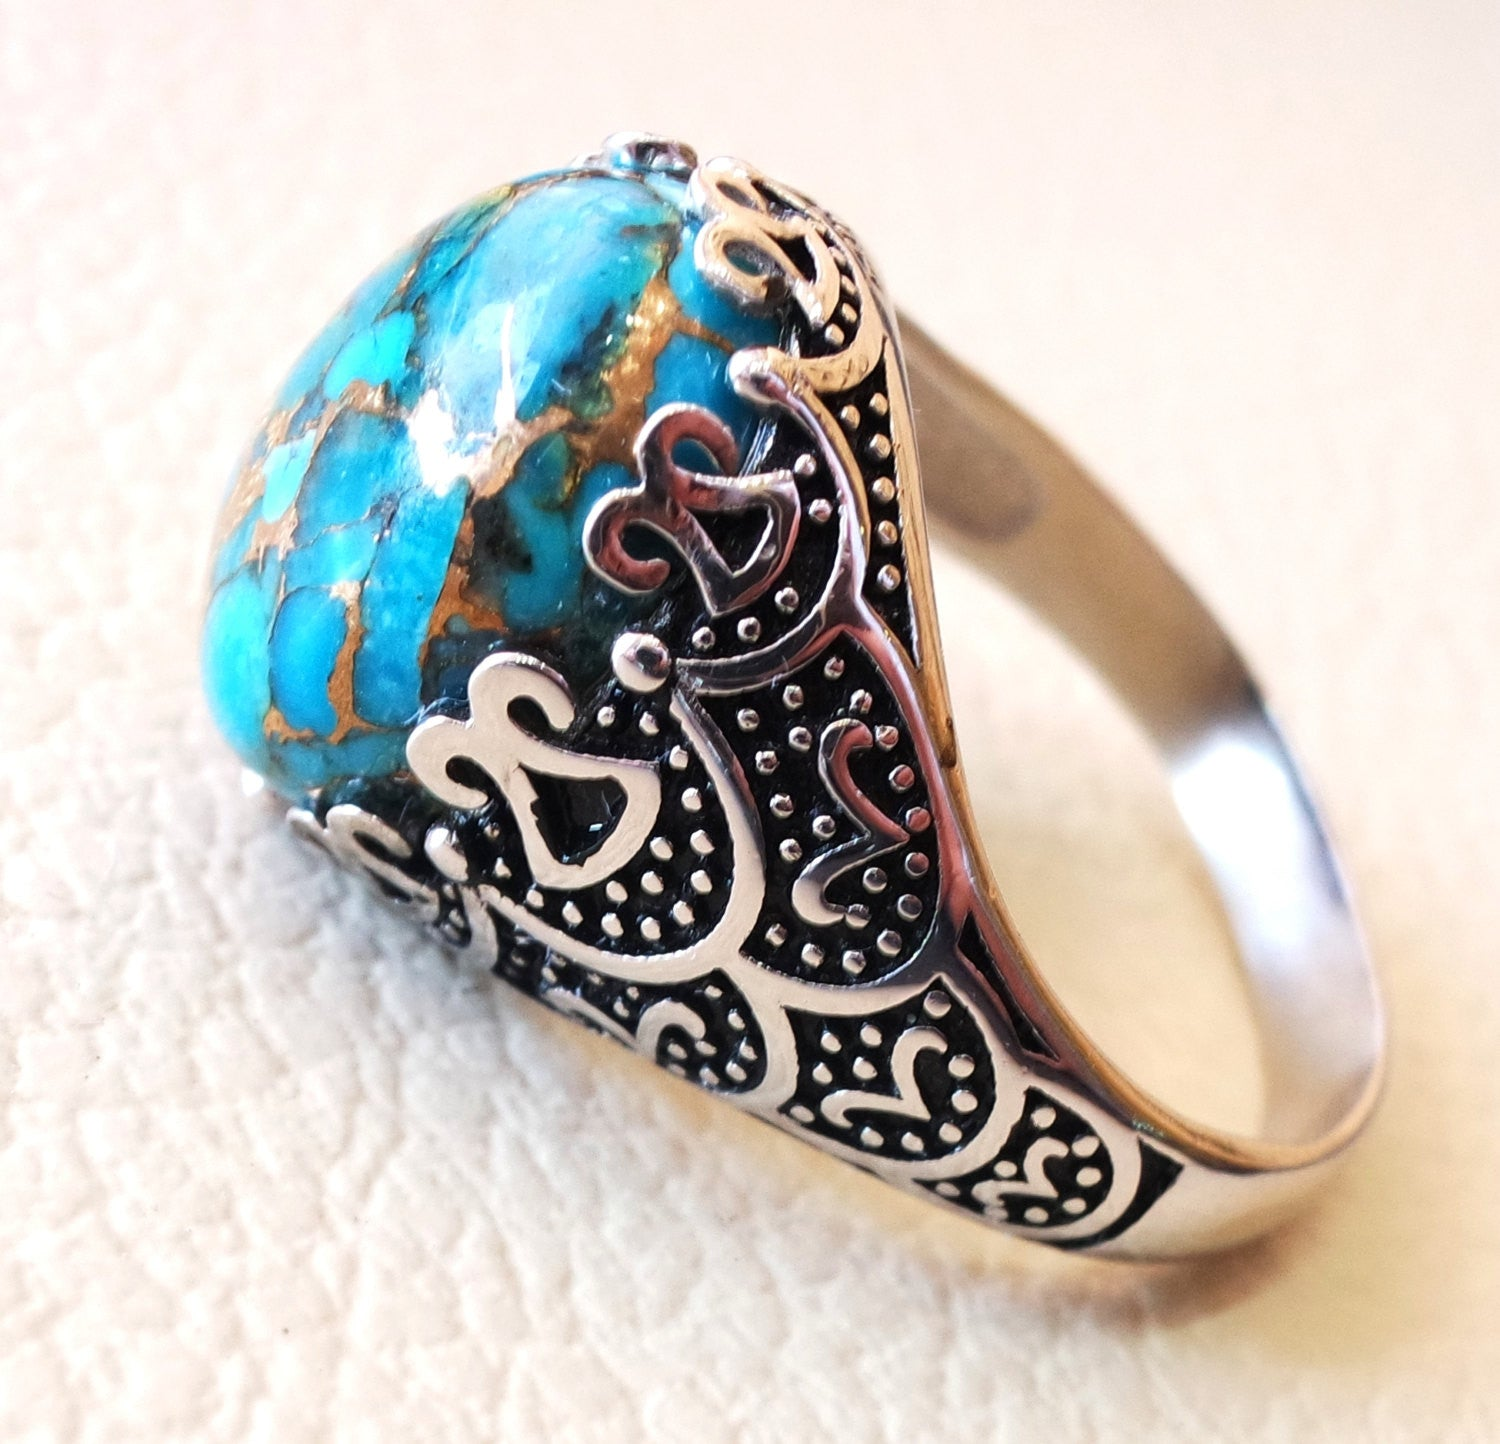 natural copper turquoise stone sterling silver 925 man ring blue semi precious high quality cabochon antique arabic ottoman style any size